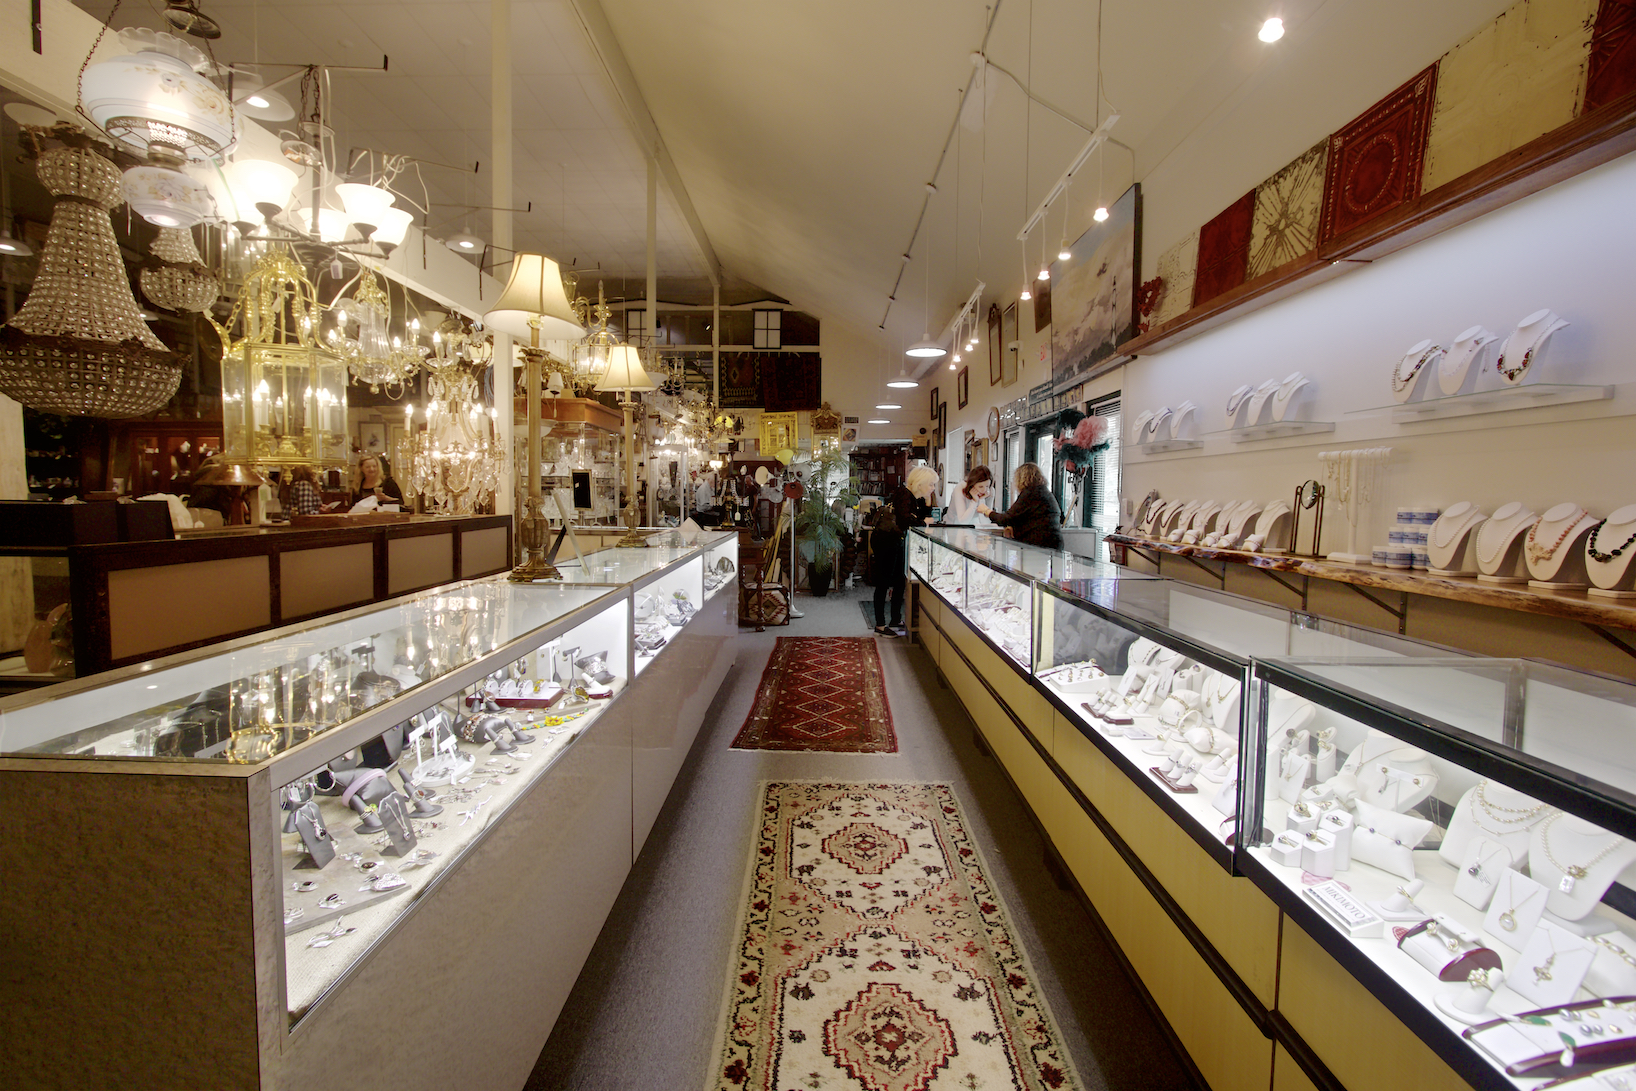 The Ivy Cottage: Your Source for Fine Estate Jewelry this Valentine's Day